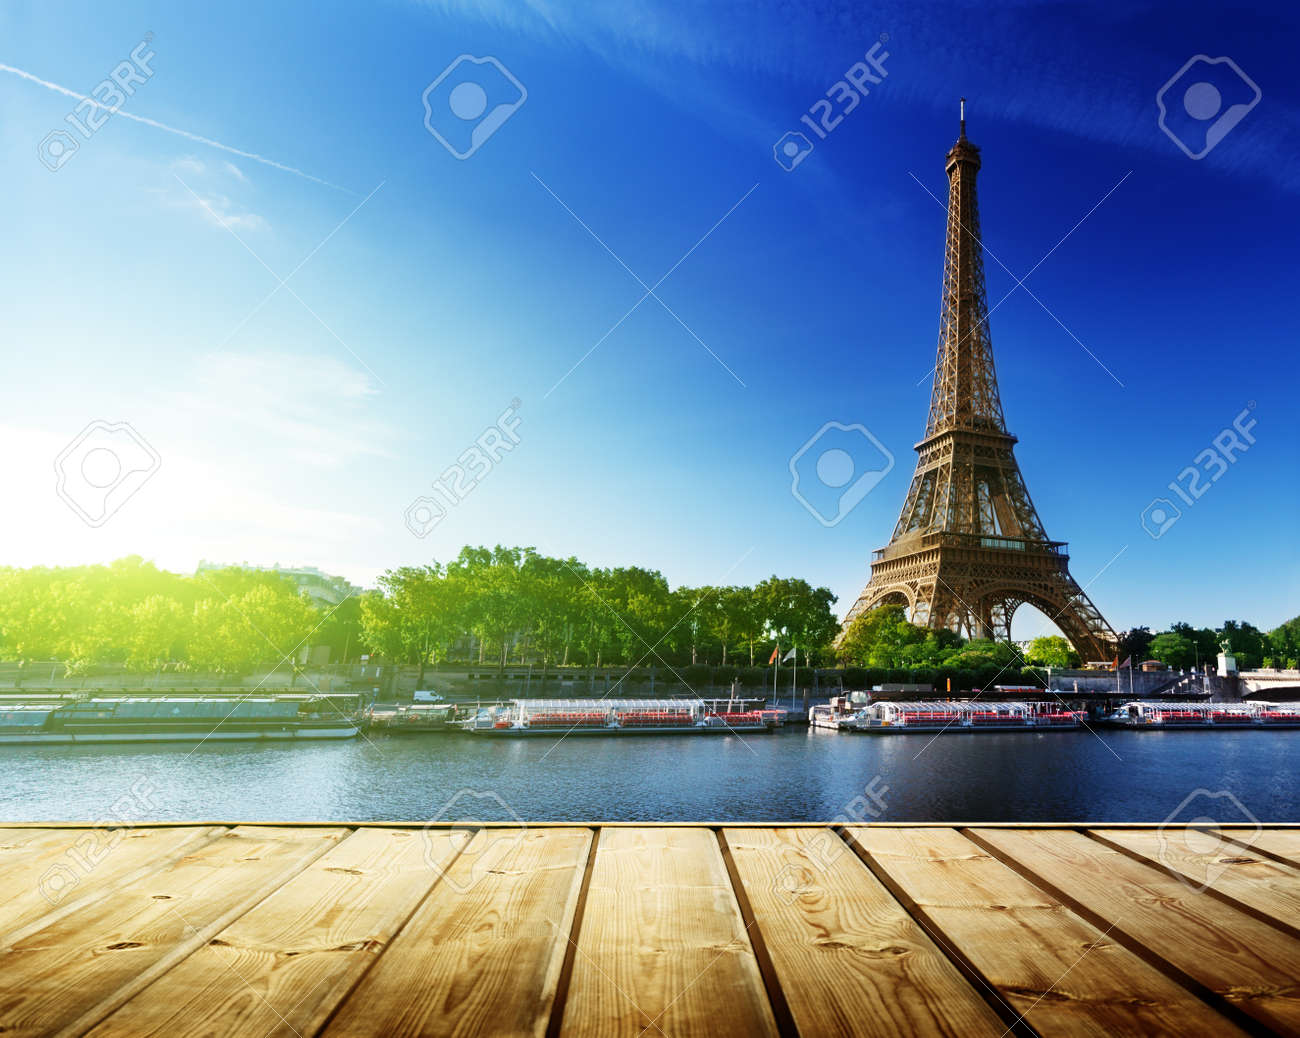 background with wooden deck table and  Eiffel tower in Paris Stock Photo - 20191580